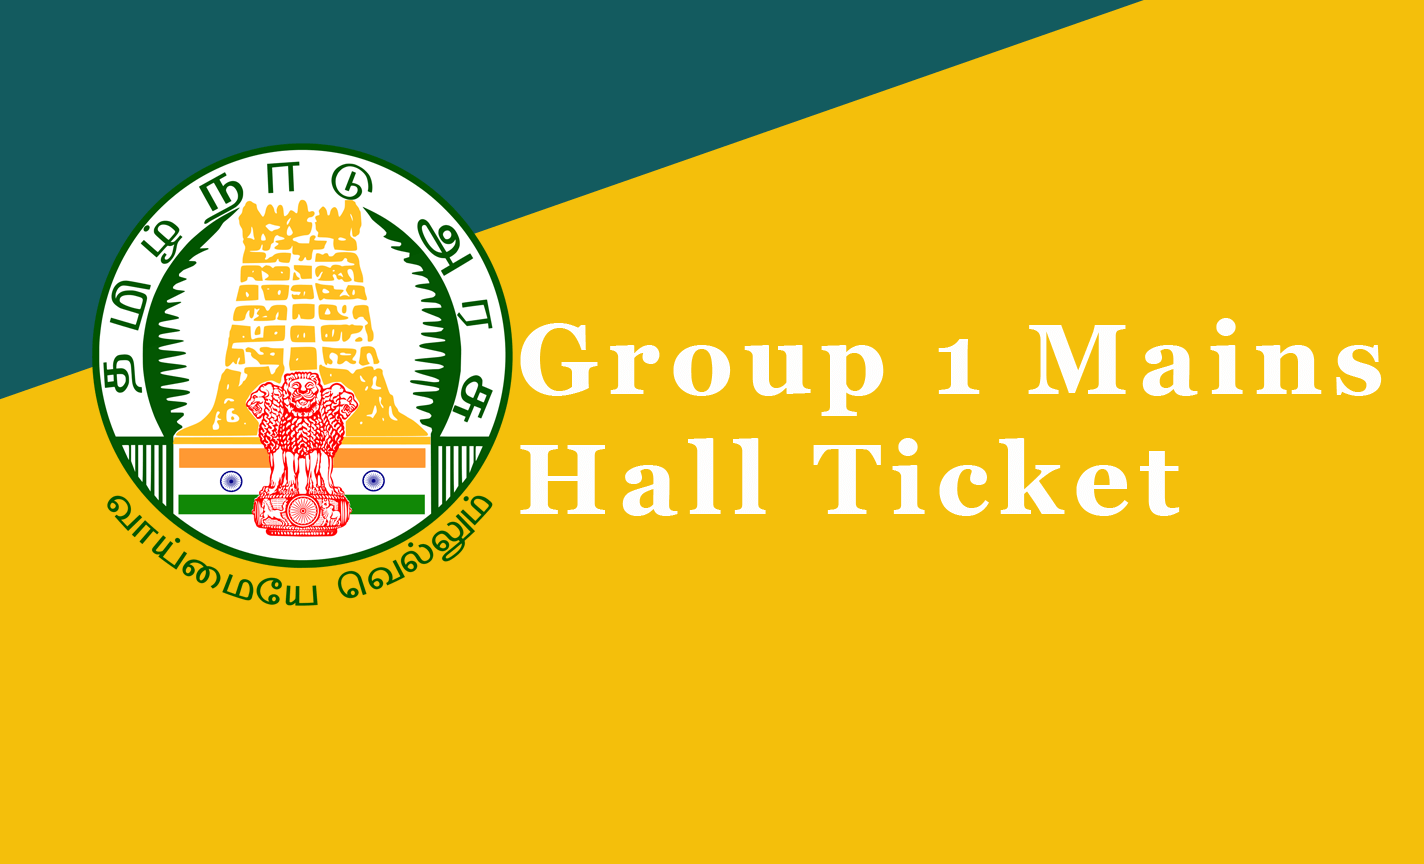 Group 1 Mains Hall Ticket 2021